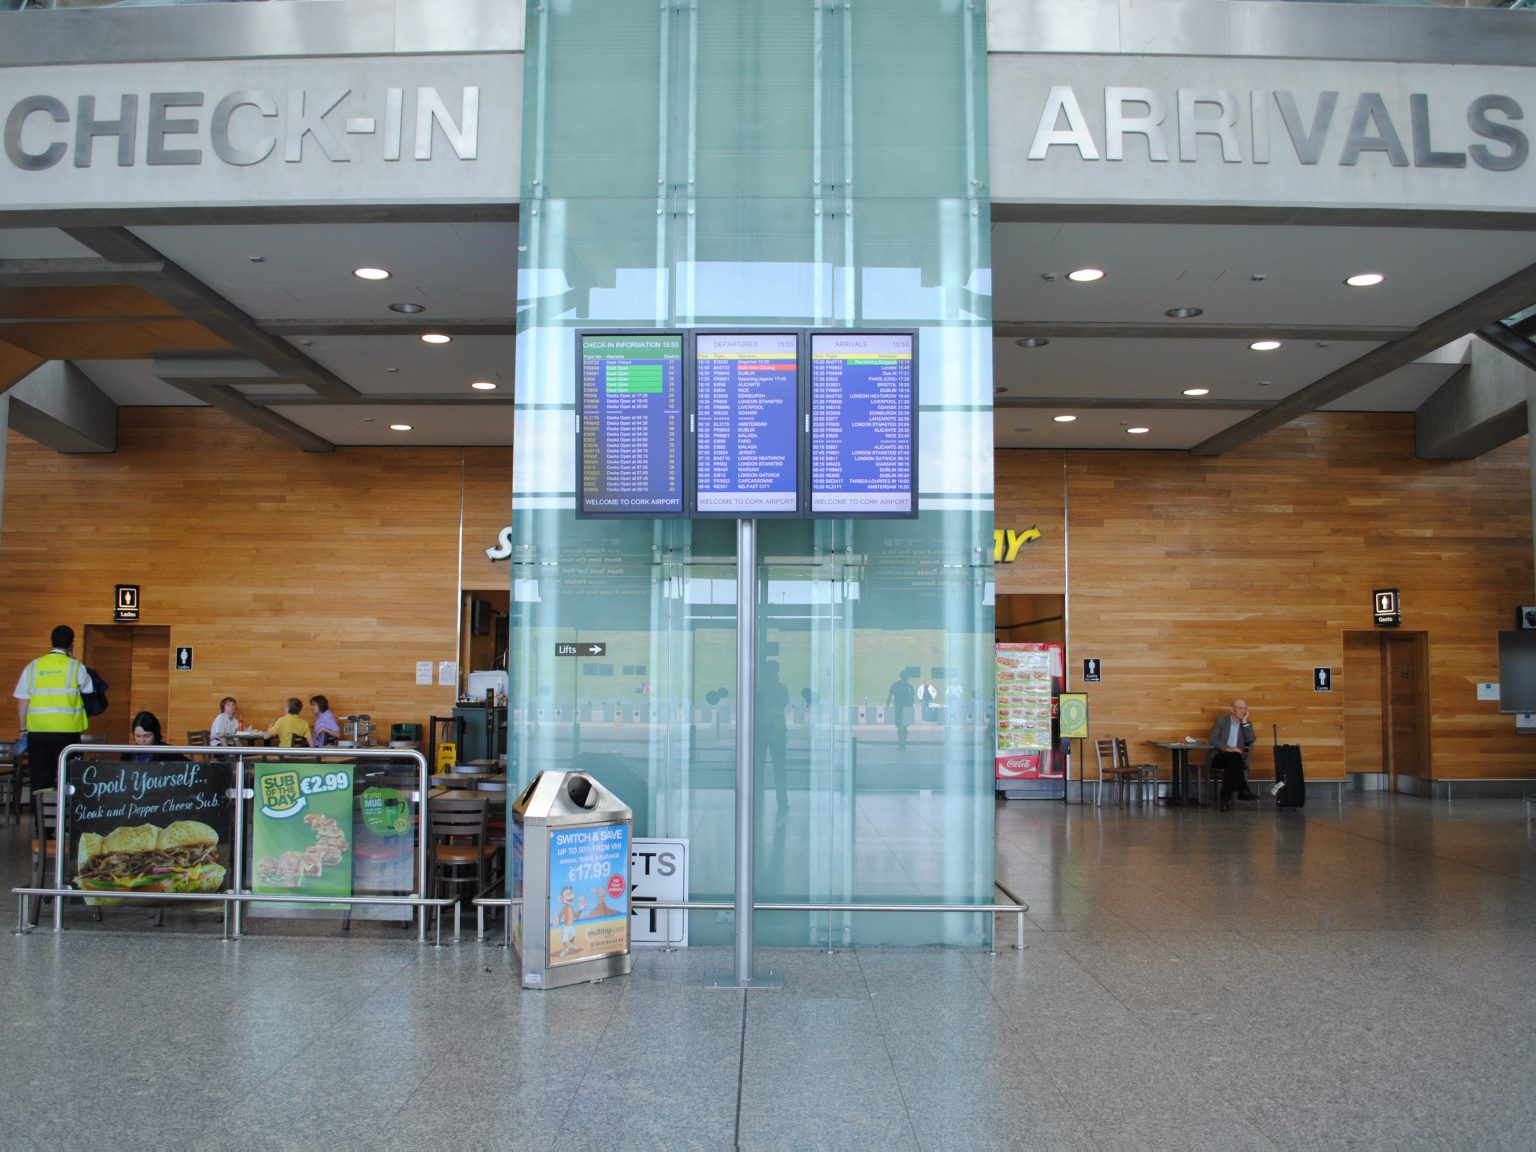 Flight information displays at Cork Airport